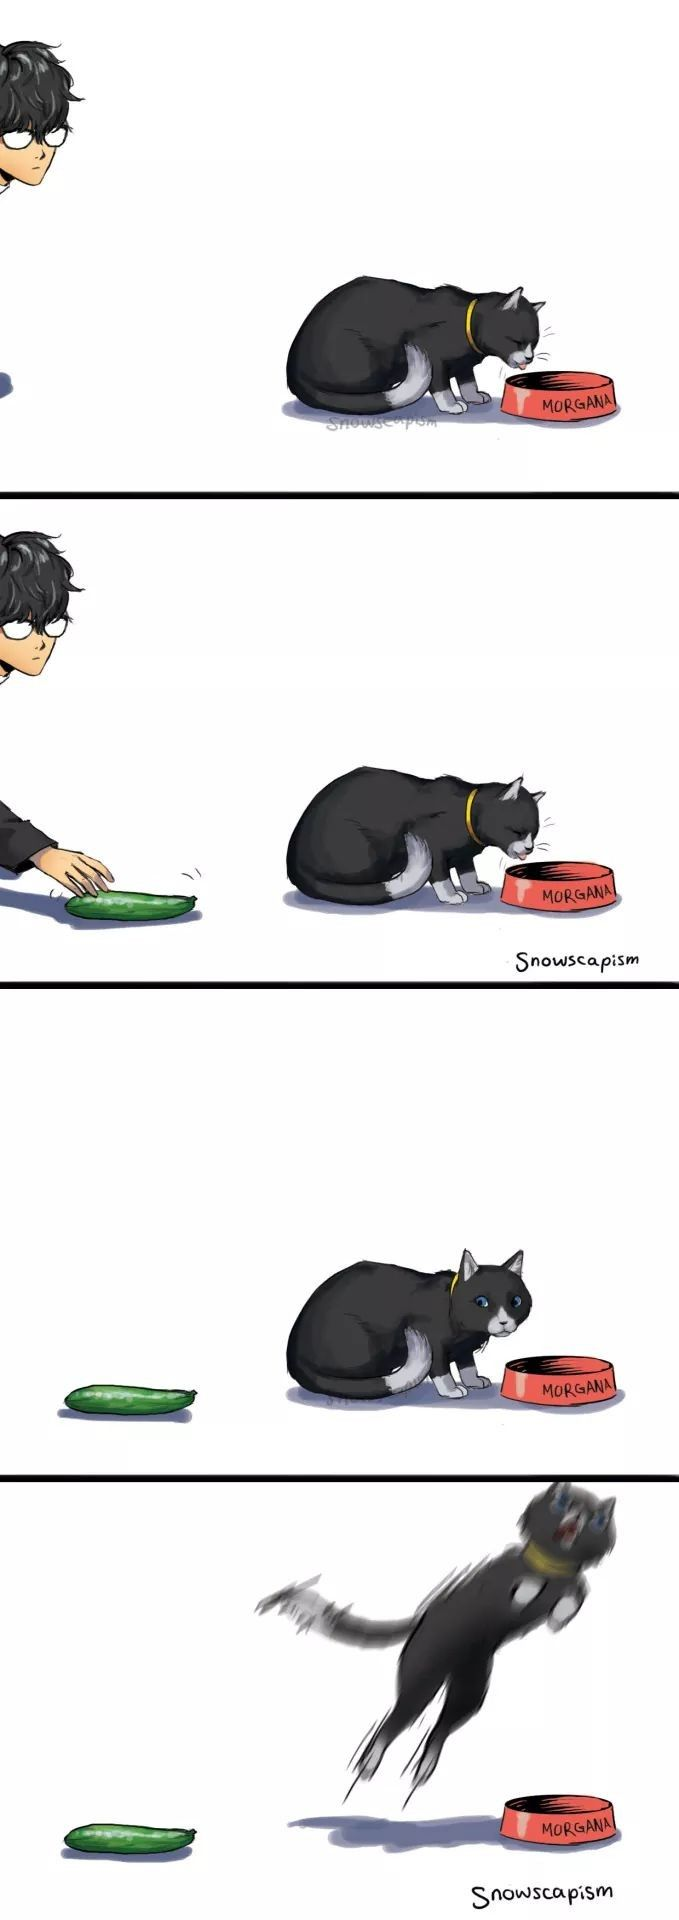 This happened to my cat once.